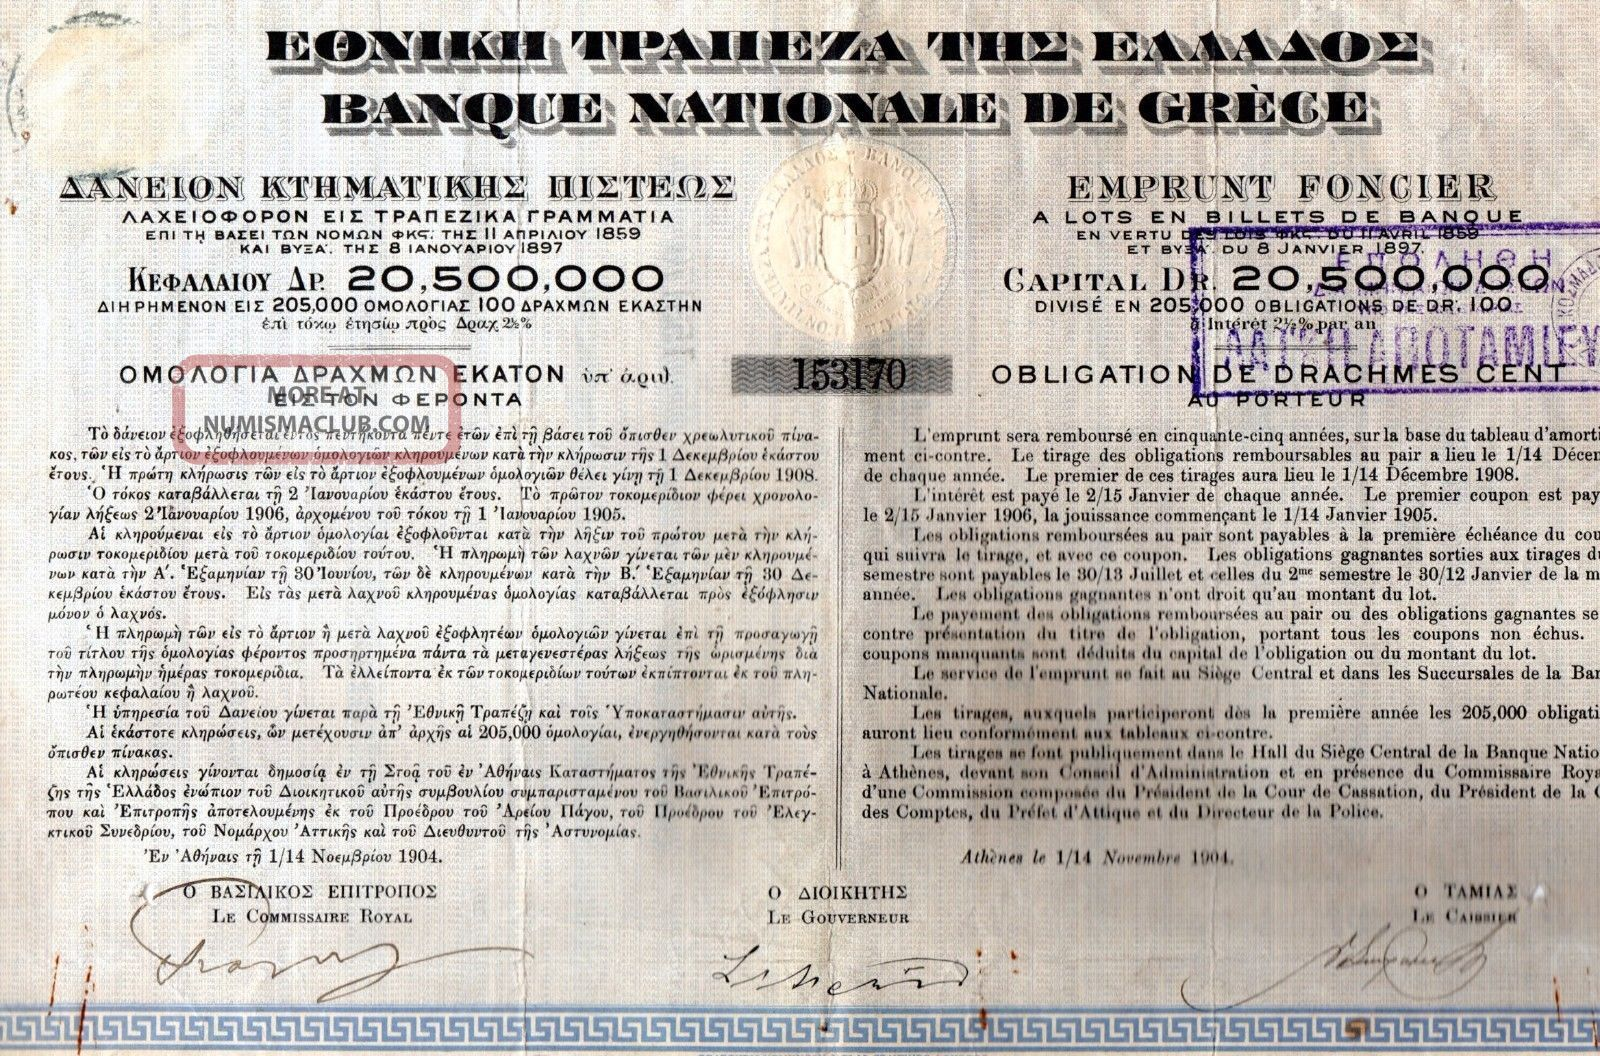 National Bank Of Greece Loan Title Of 1 Share Bond Stock Certificate 1904 World photo